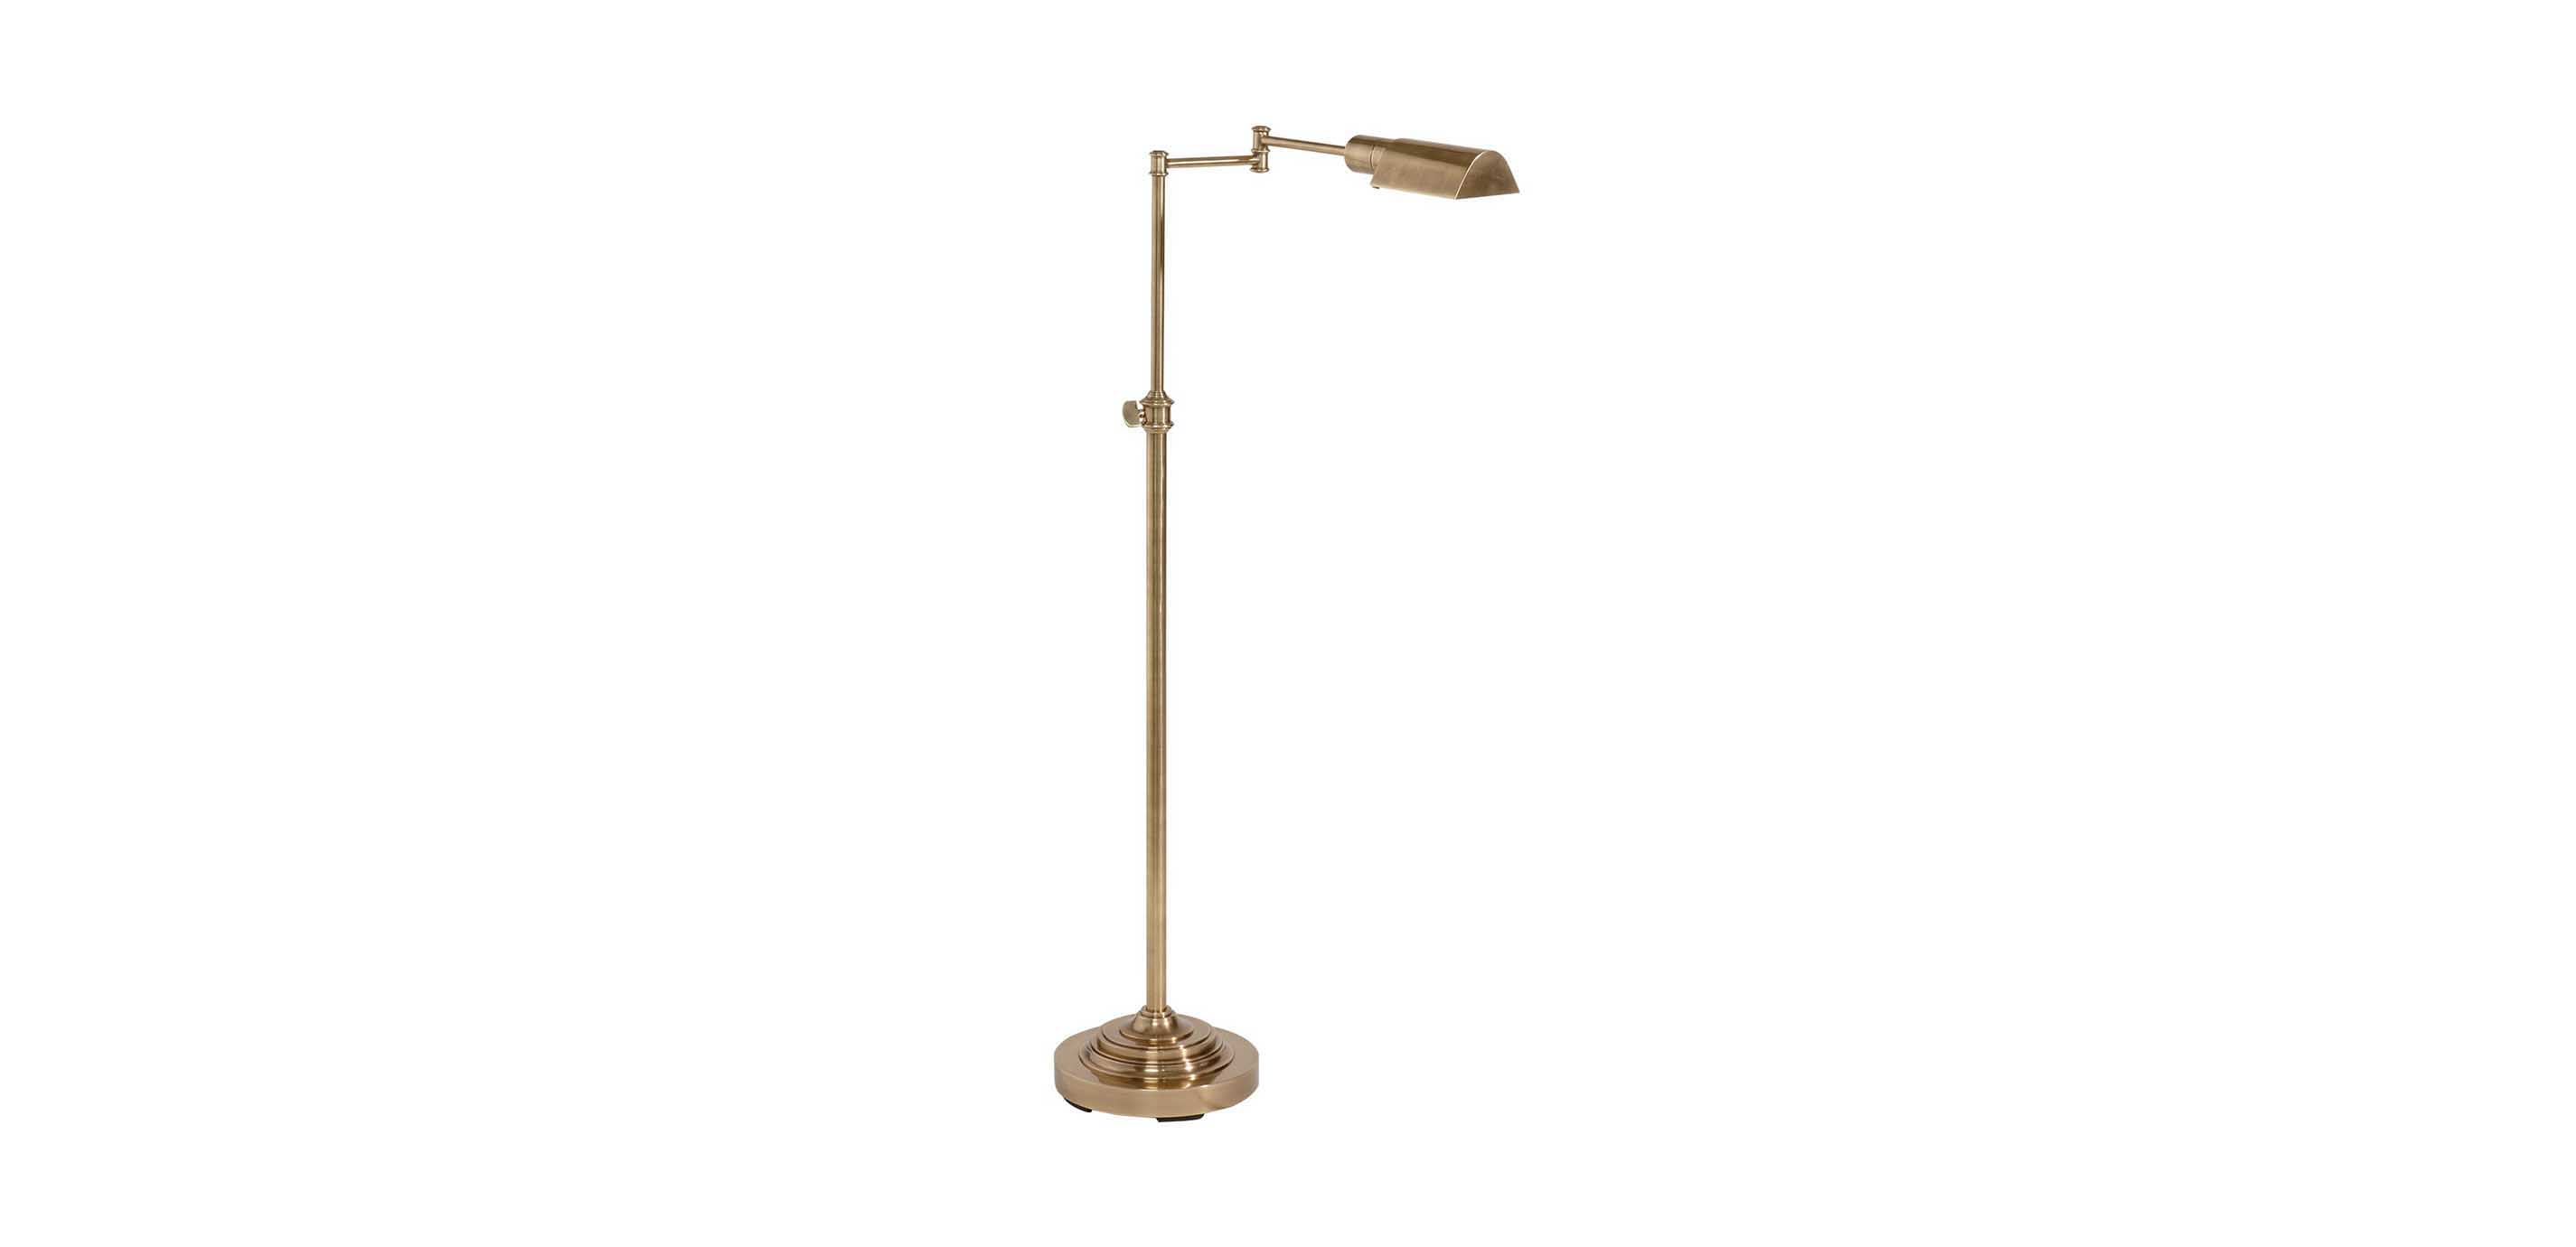 Brass pharmacy floor lamp floor lamps images brass pharmacy floor lamp largegray mozeypictures